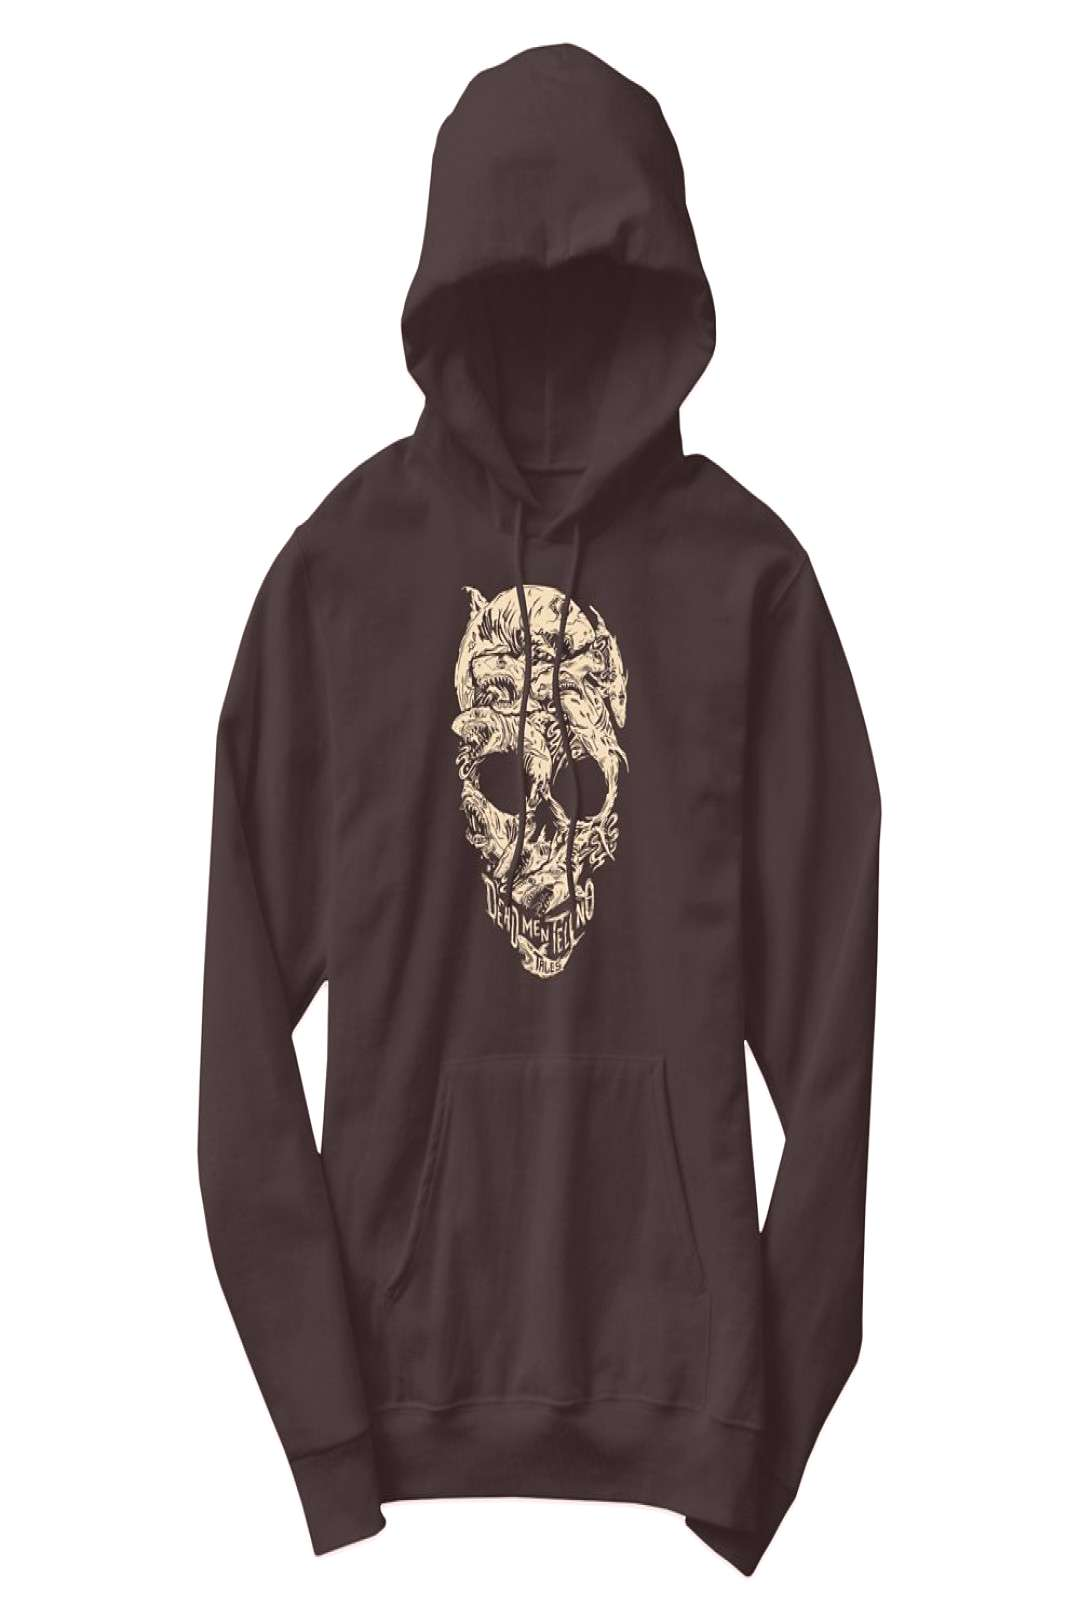 Pirates of the Caribbean Dead Men Tell No Tales Skull Hoodie for Men - Customizable shopDisney